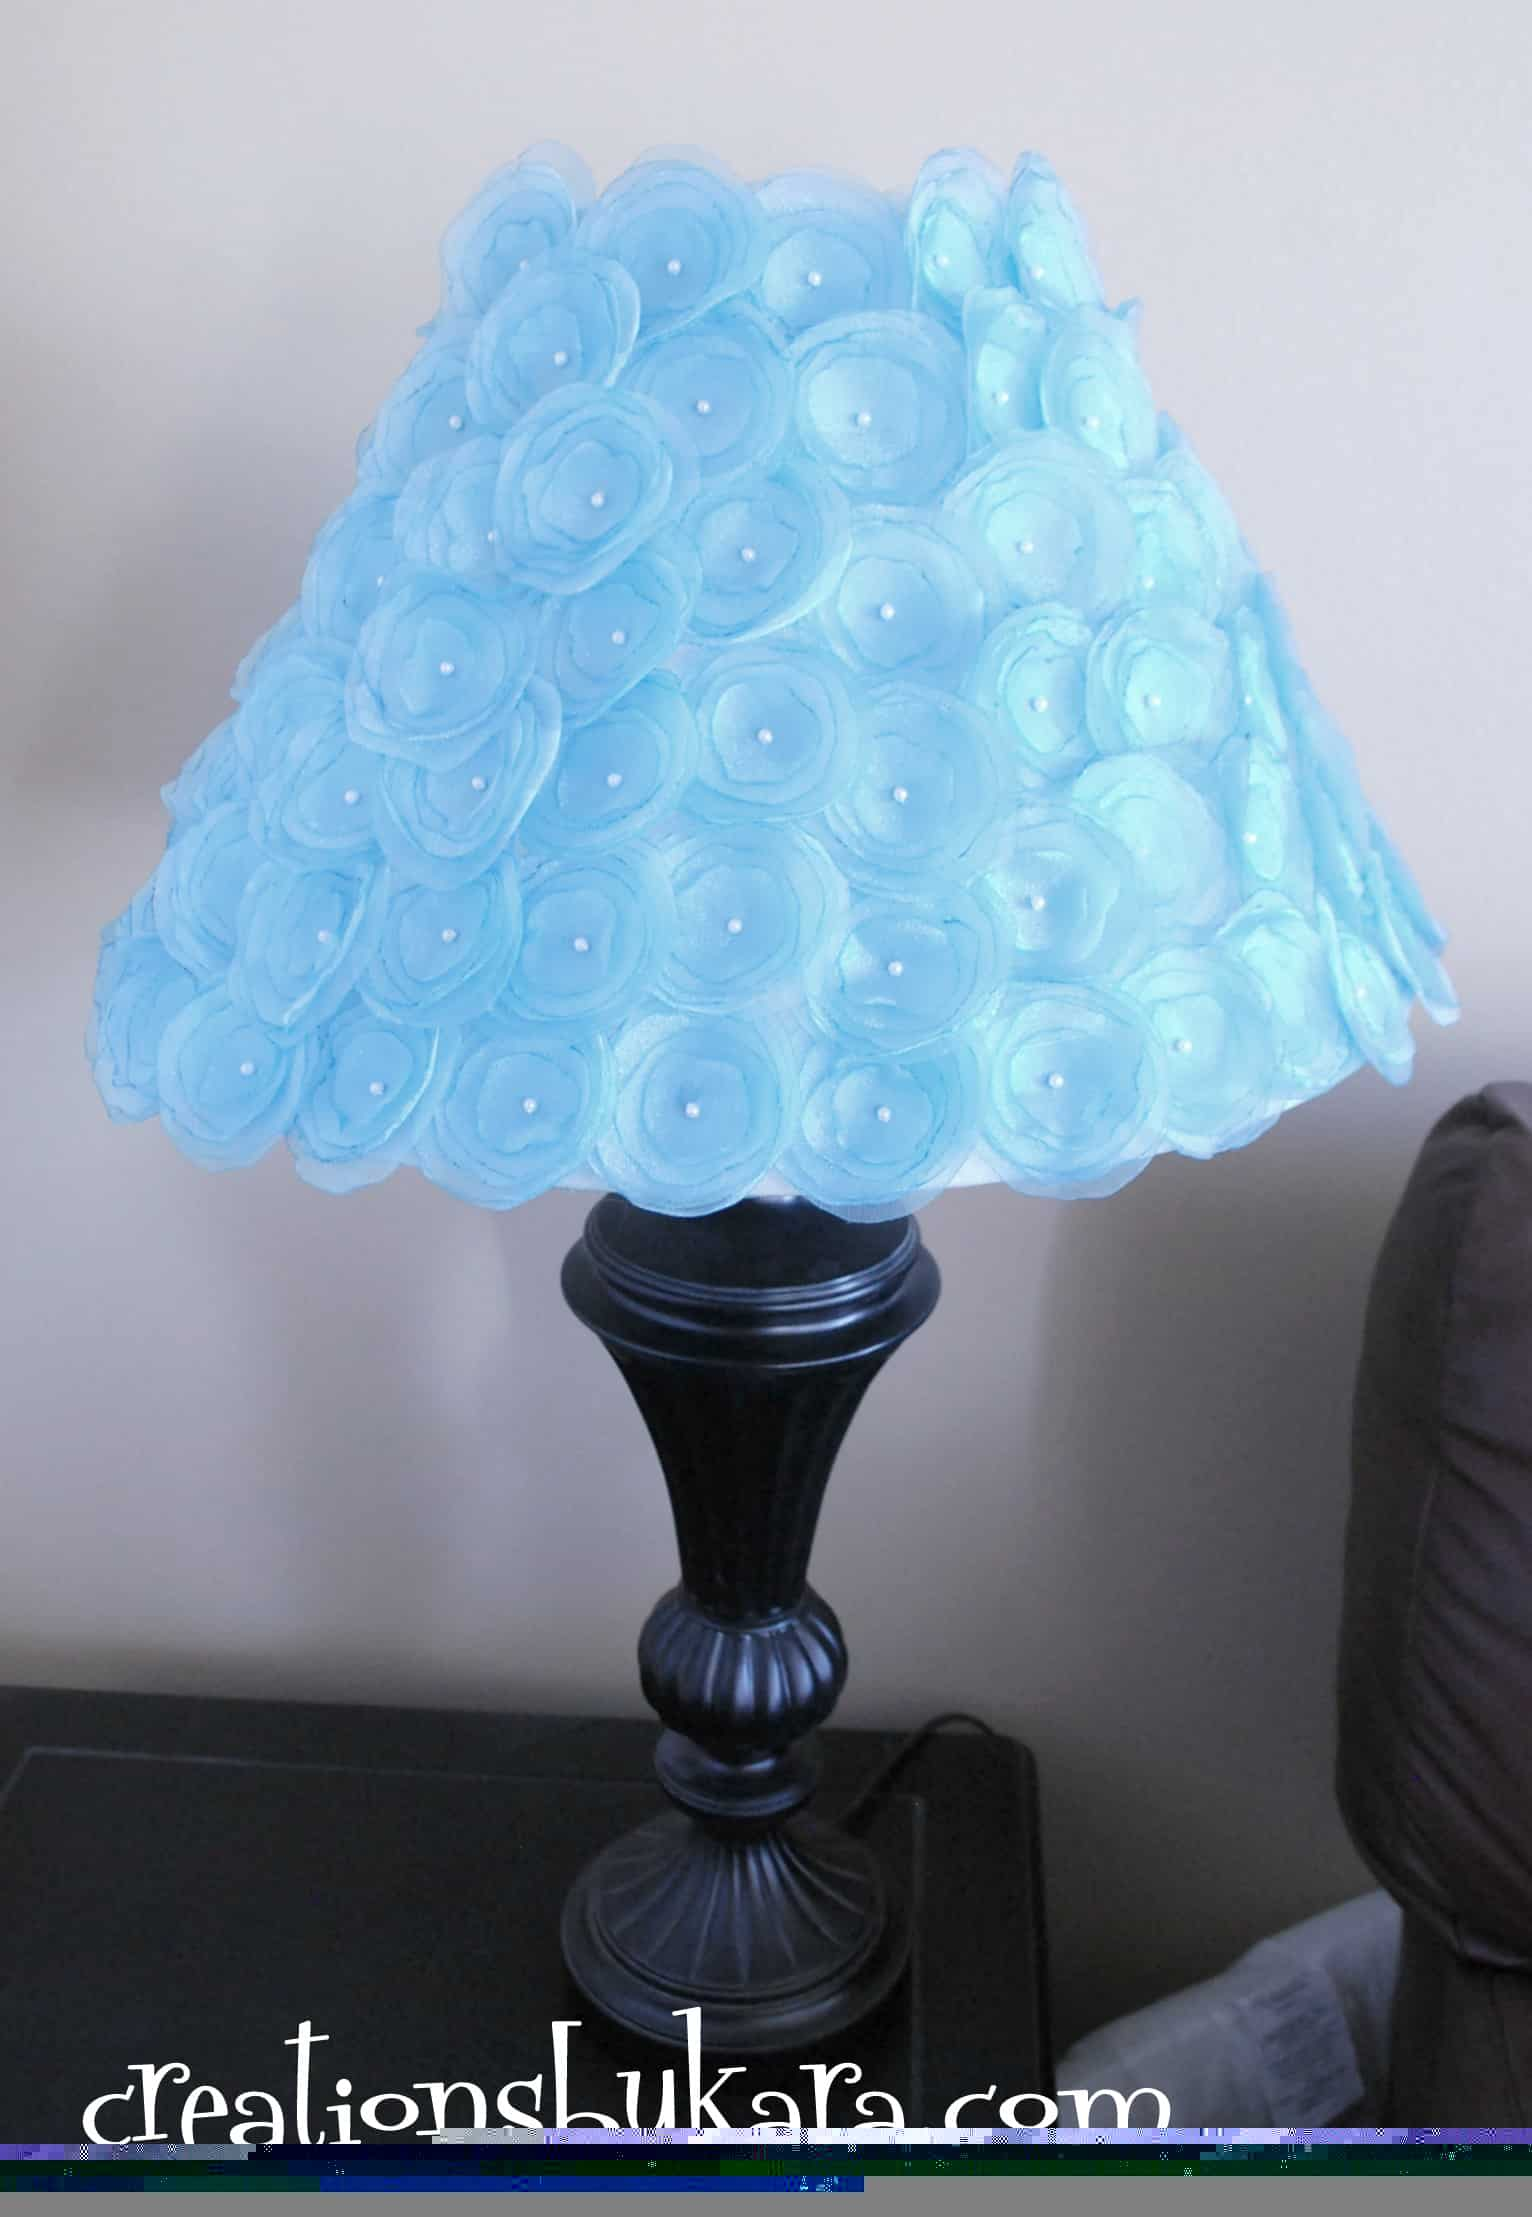 Diy lampshade 011 creations by kara - Diy lamp shade ...